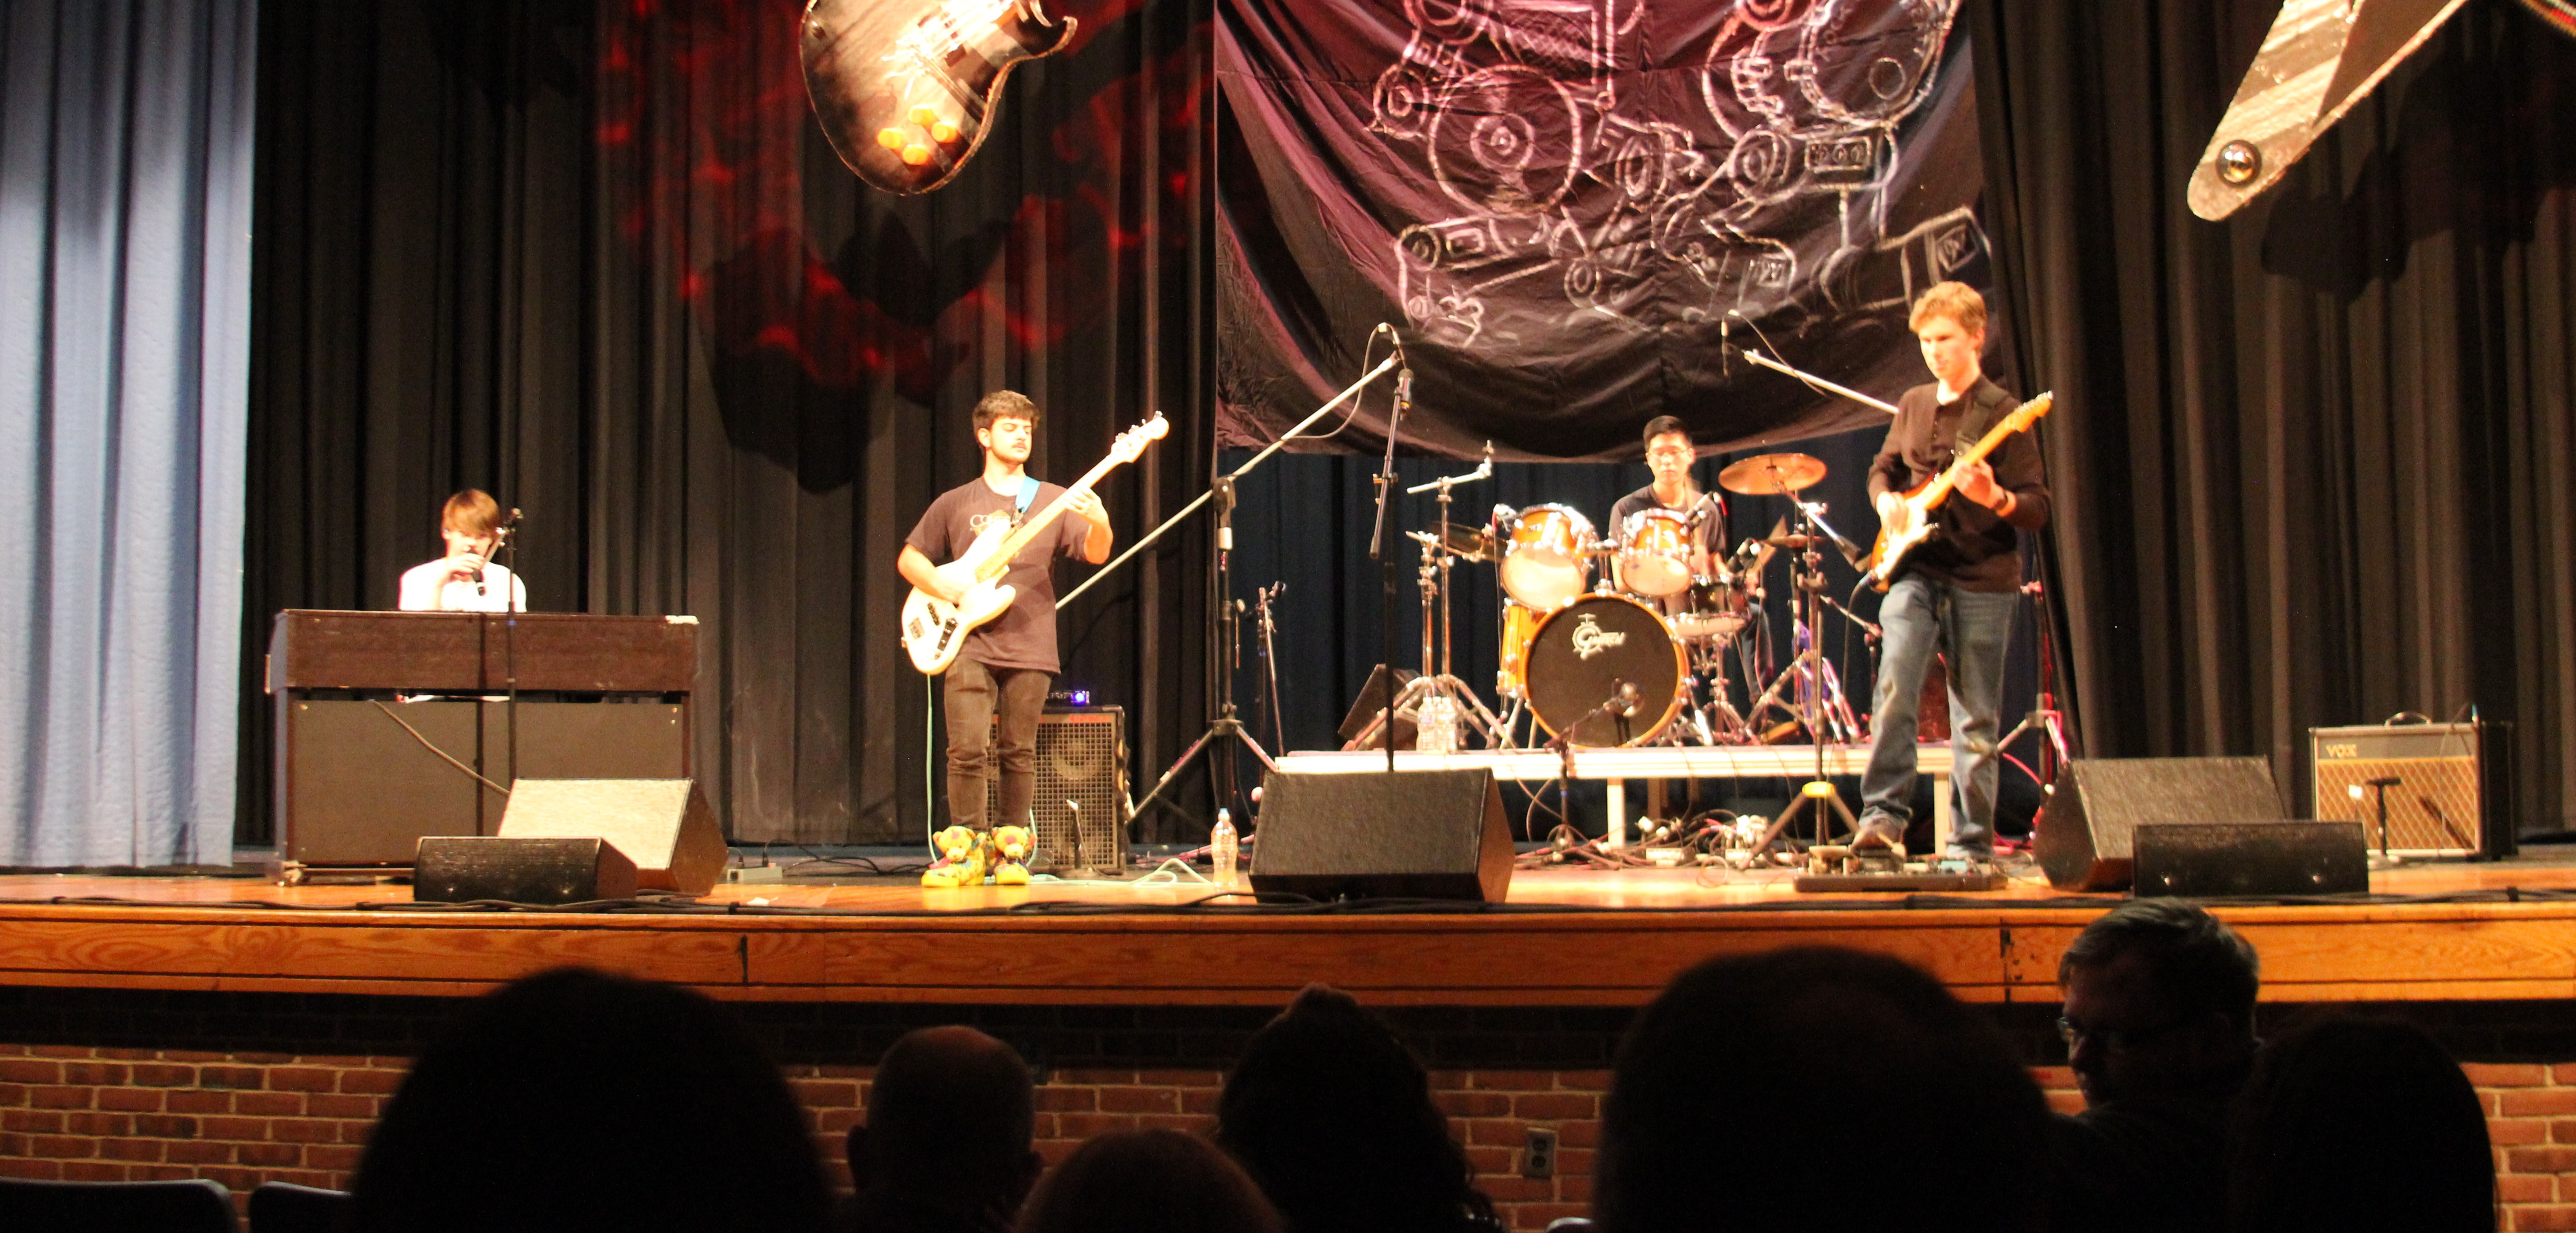 Devin Streight, Jacob Gemma, Drew Reushlein, FUSE, FUSE Band, Rock Band, Band Maryland,Battle of the bands, Teen Band, fuse band, Best Teen Rock Band, Opening Band, Support Band, Bands For Battles